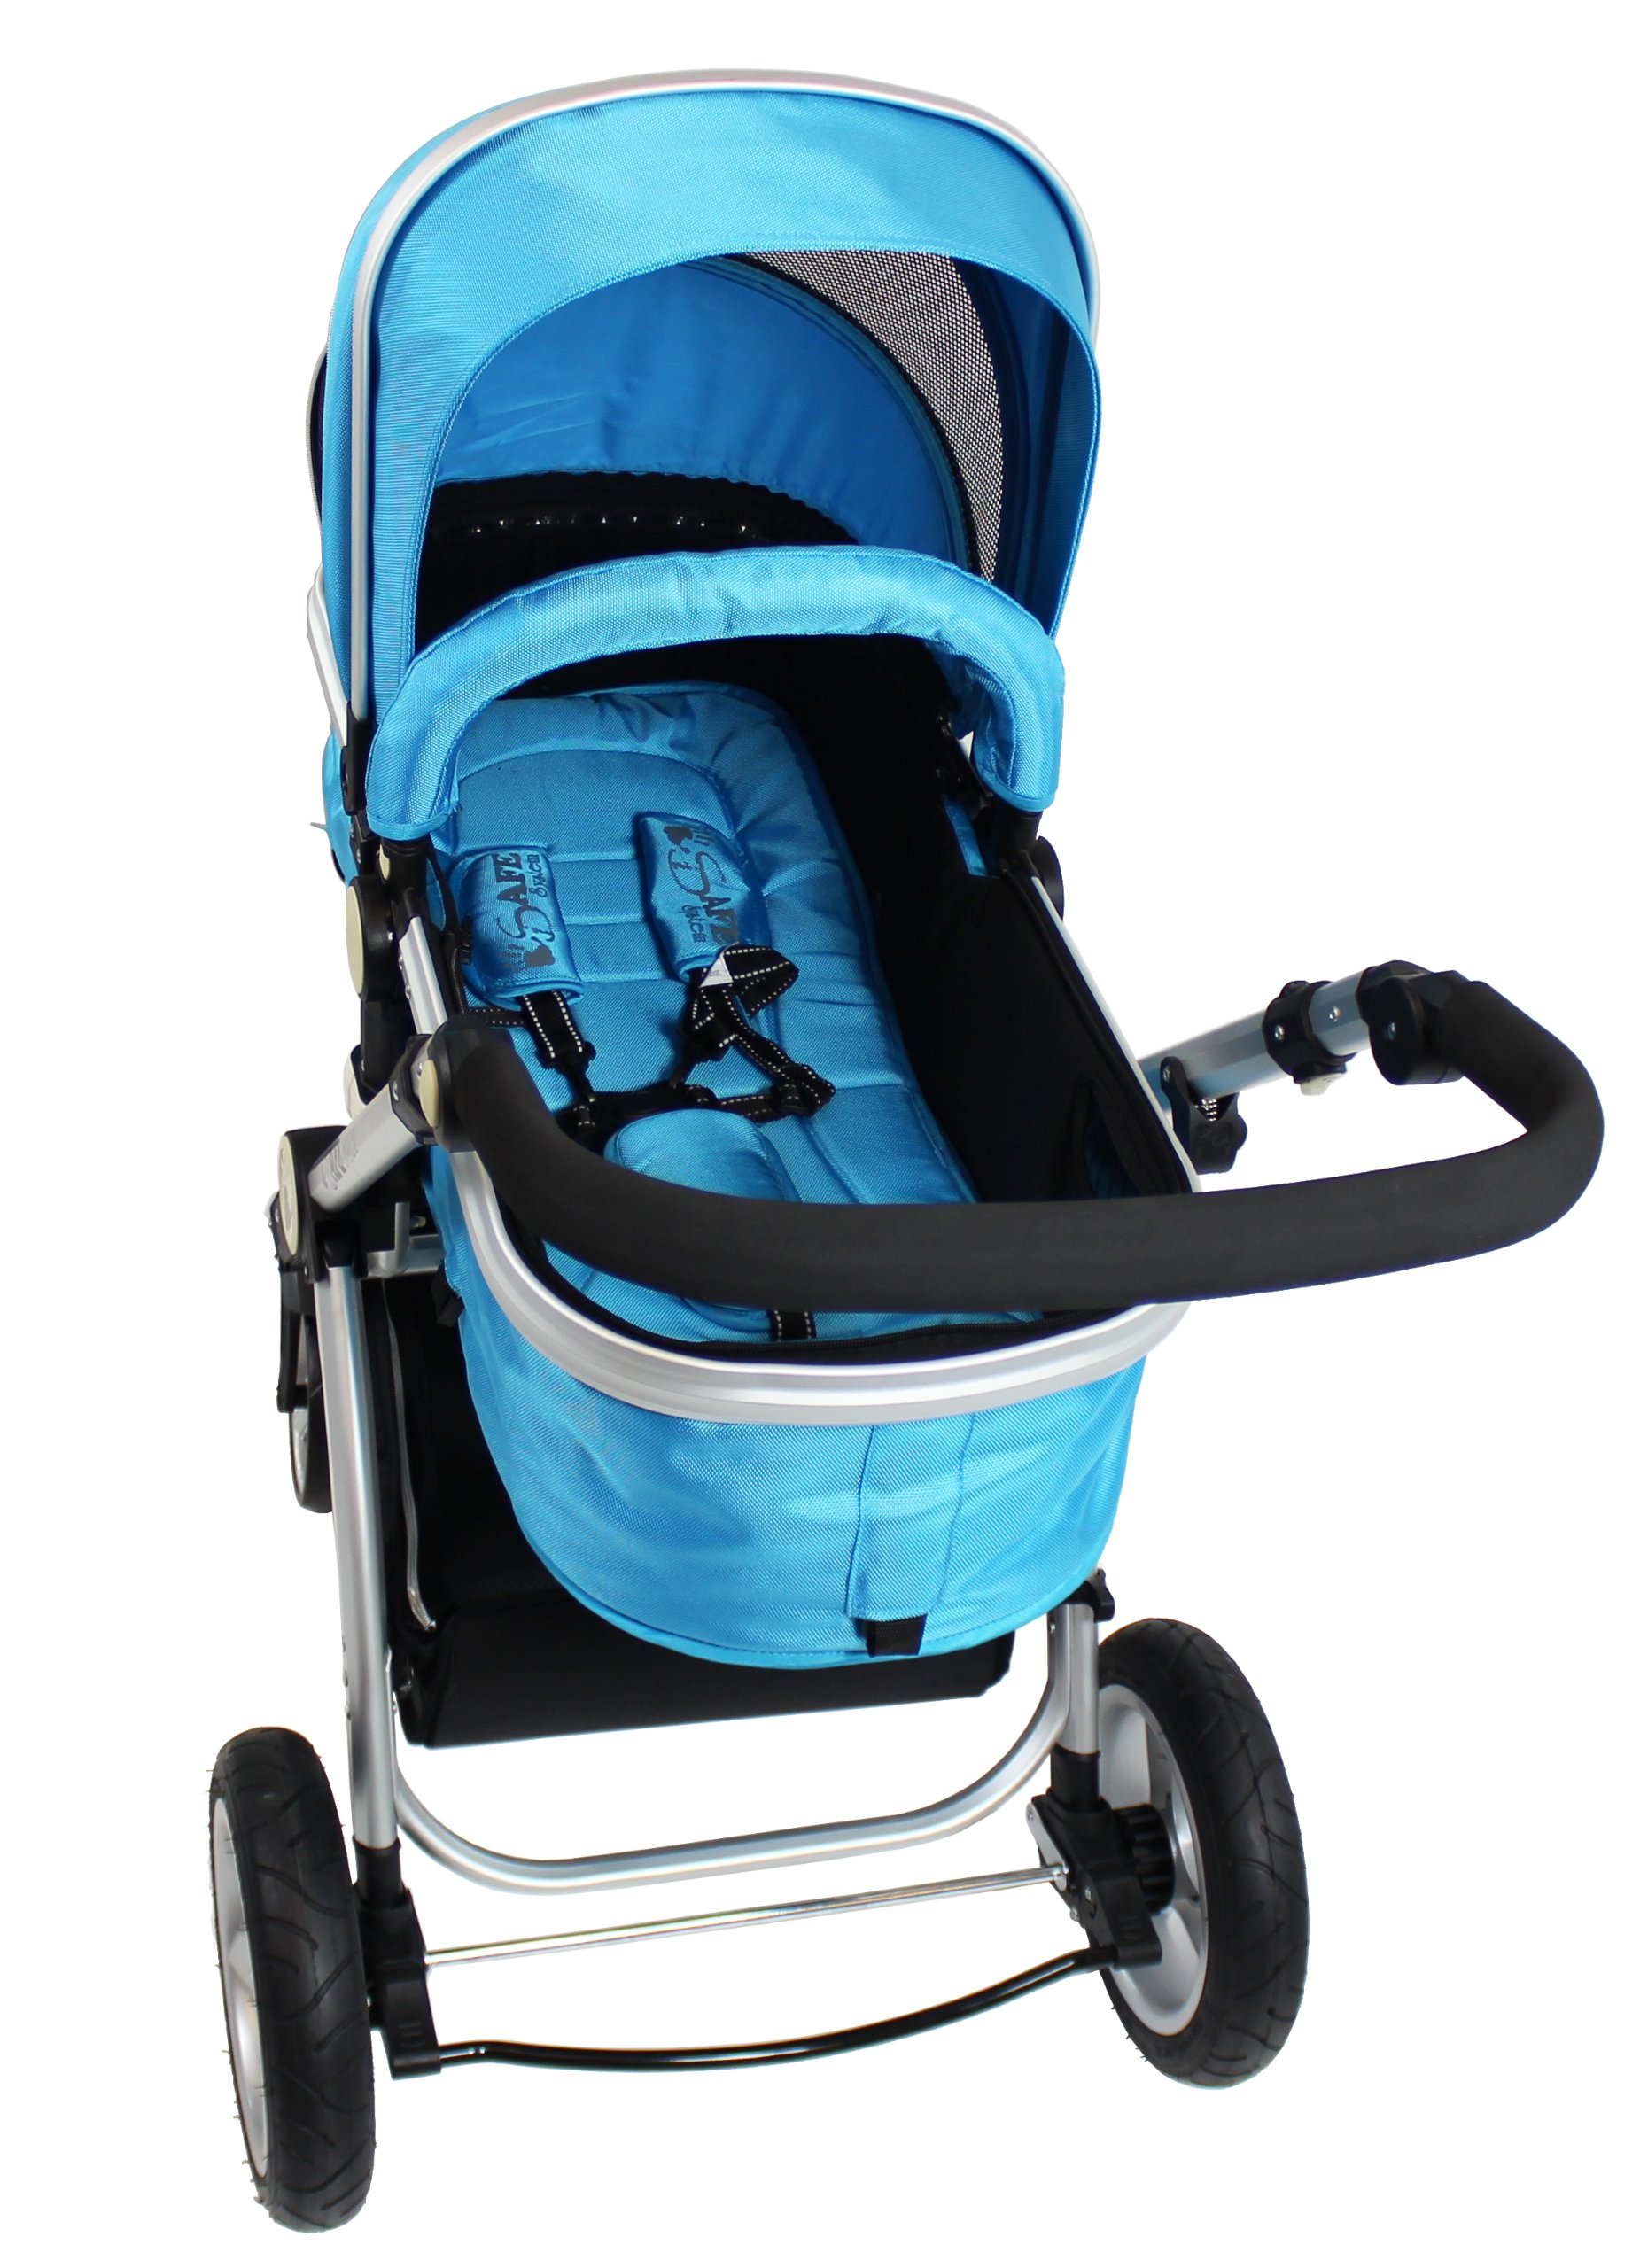 iSafe 2 in 1 Baby Pram System Complete (Ocean) iSafe We Are Proud To Present One Of The Finest 2in1 Stroller/Pram/Pramette/Travel System in the UK & Europe! 2 in 1 Stroller / Pram Extremely Easy Conversion To A Full Size Carrycot For Unrivalled Comfort. Complete With Boot Cover, Luxury Liner, 5 Point Harness, Raincover, Shopping Basket With Closed Ziped Top High Quality Rubber Inflatable Wheels With The Full All around Soft Suspension For That Perfect Unrivalled Ride 9